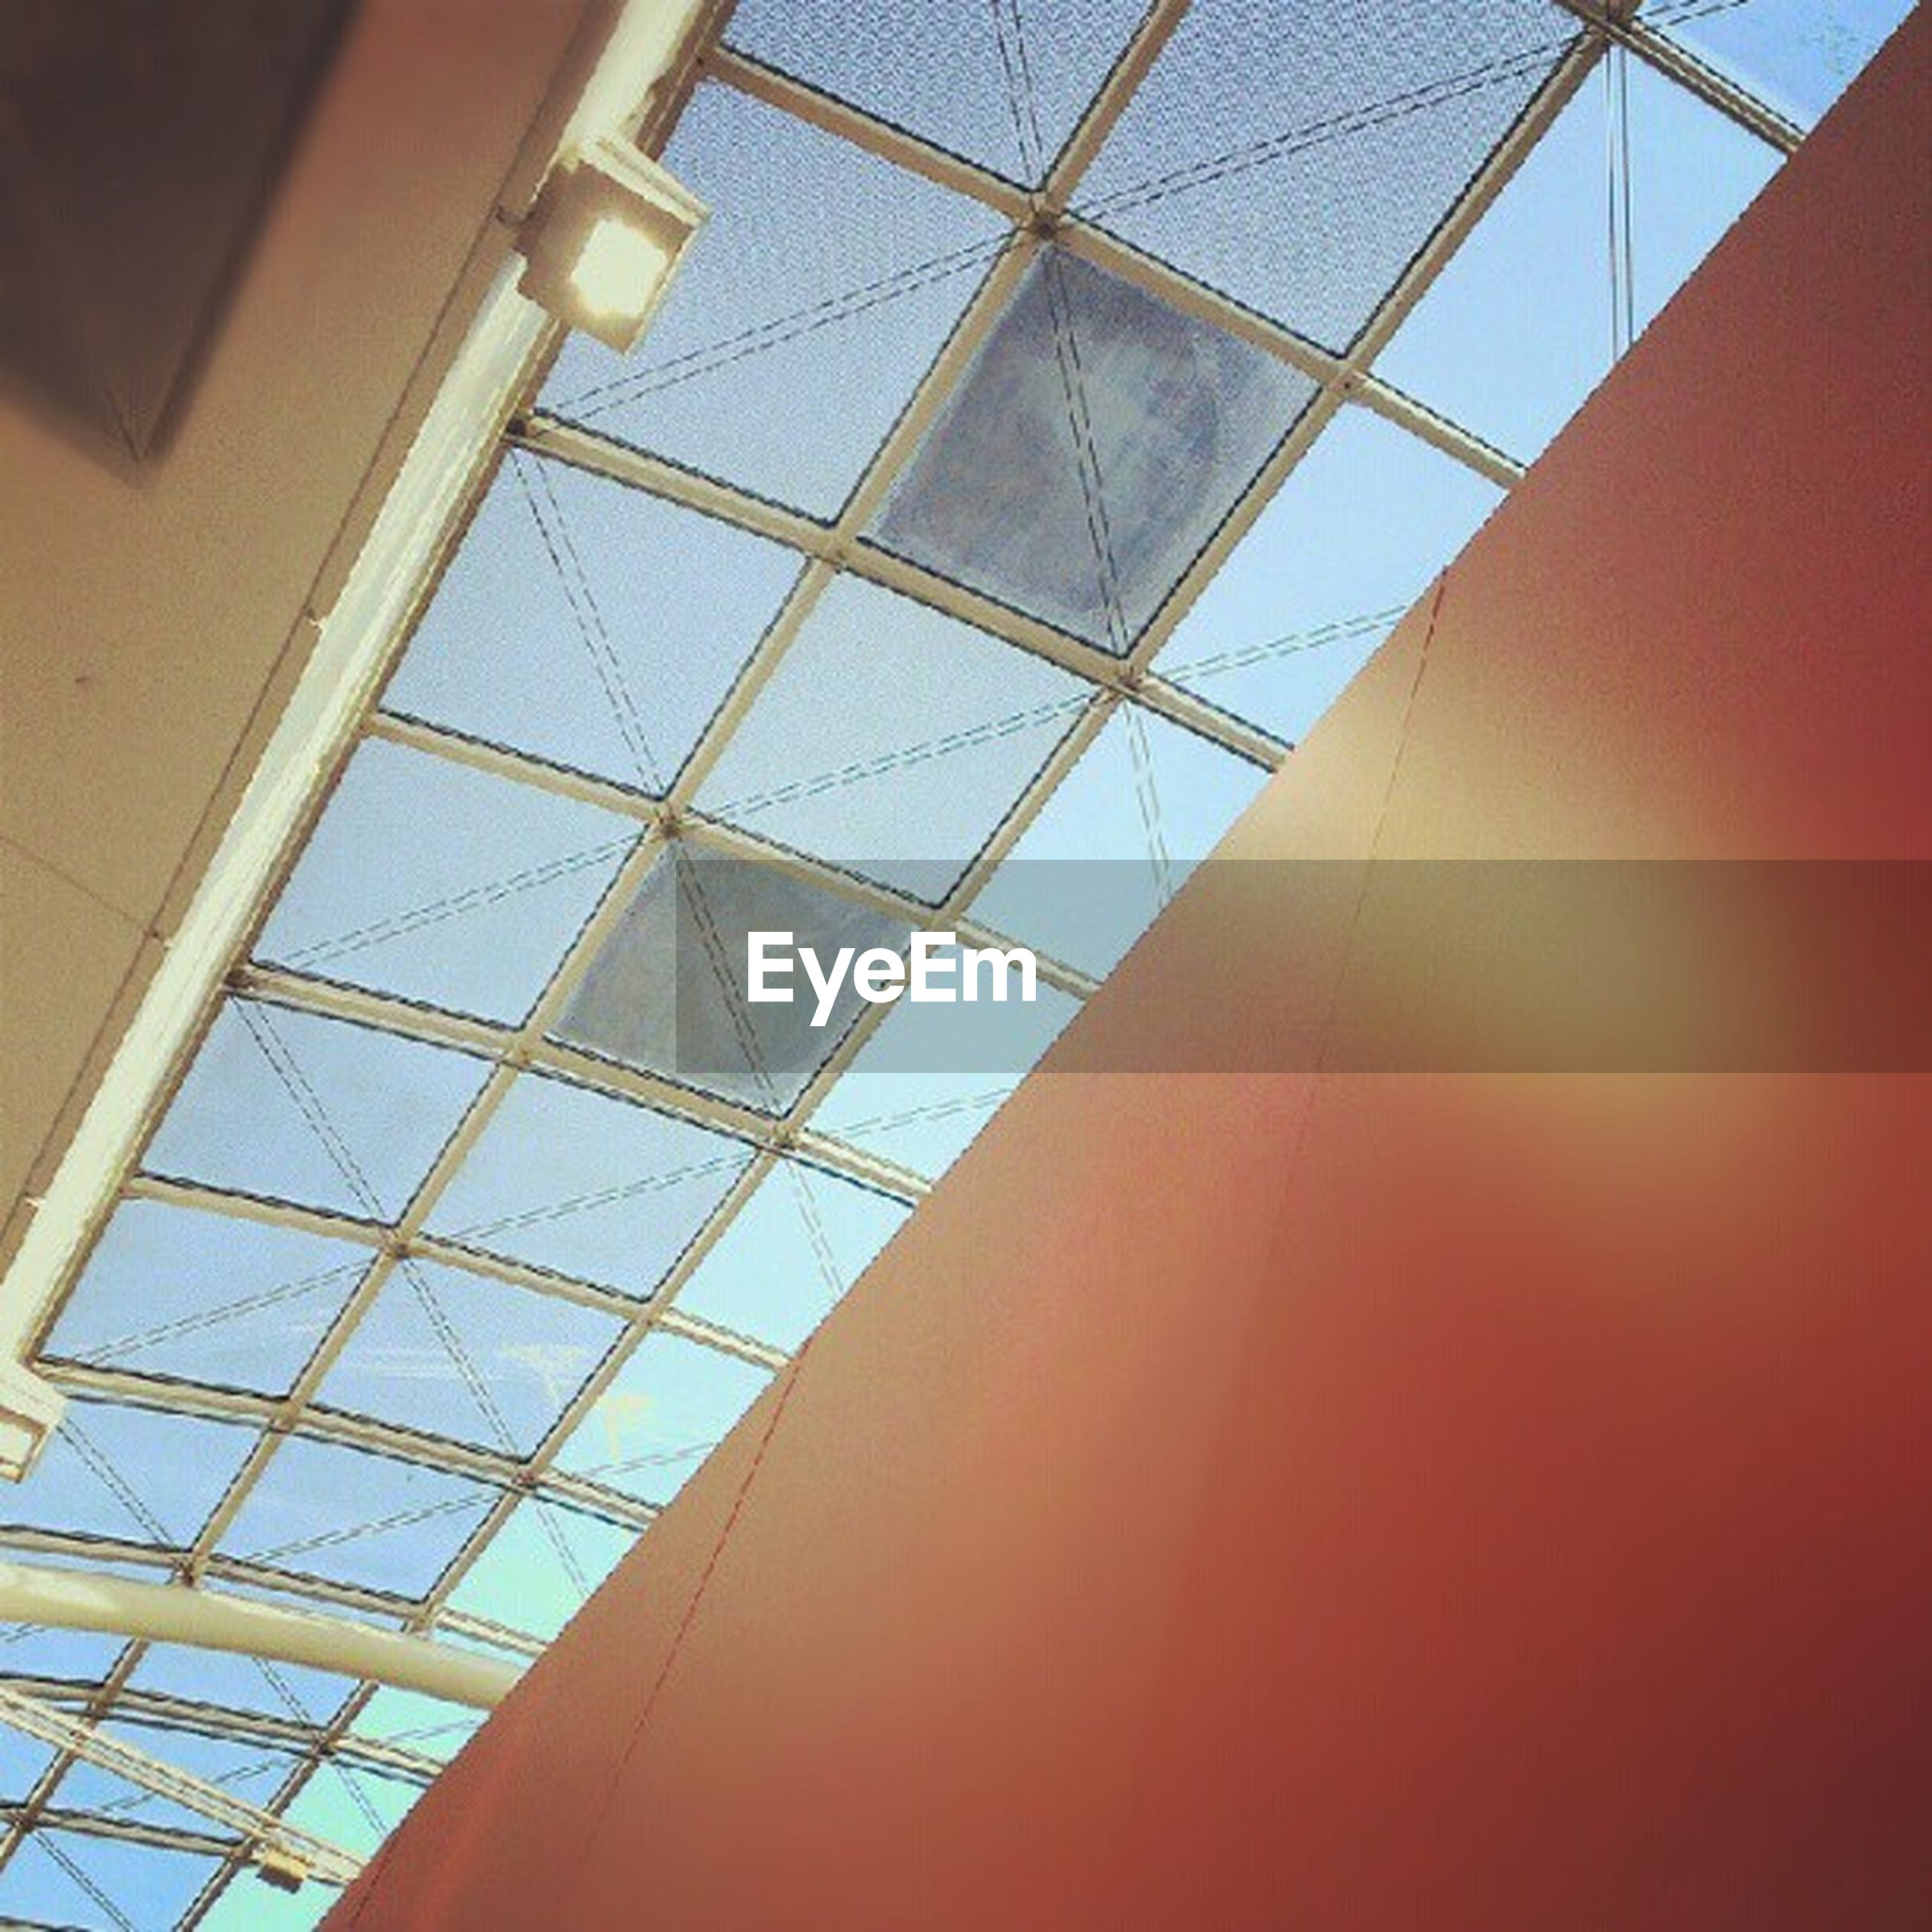 low angle view, indoors, architecture, ceiling, built structure, modern, glass - material, directly below, pattern, architectural feature, skylight, illuminated, geometric shape, design, no people, building, lighting equipment, day, sky, building exterior